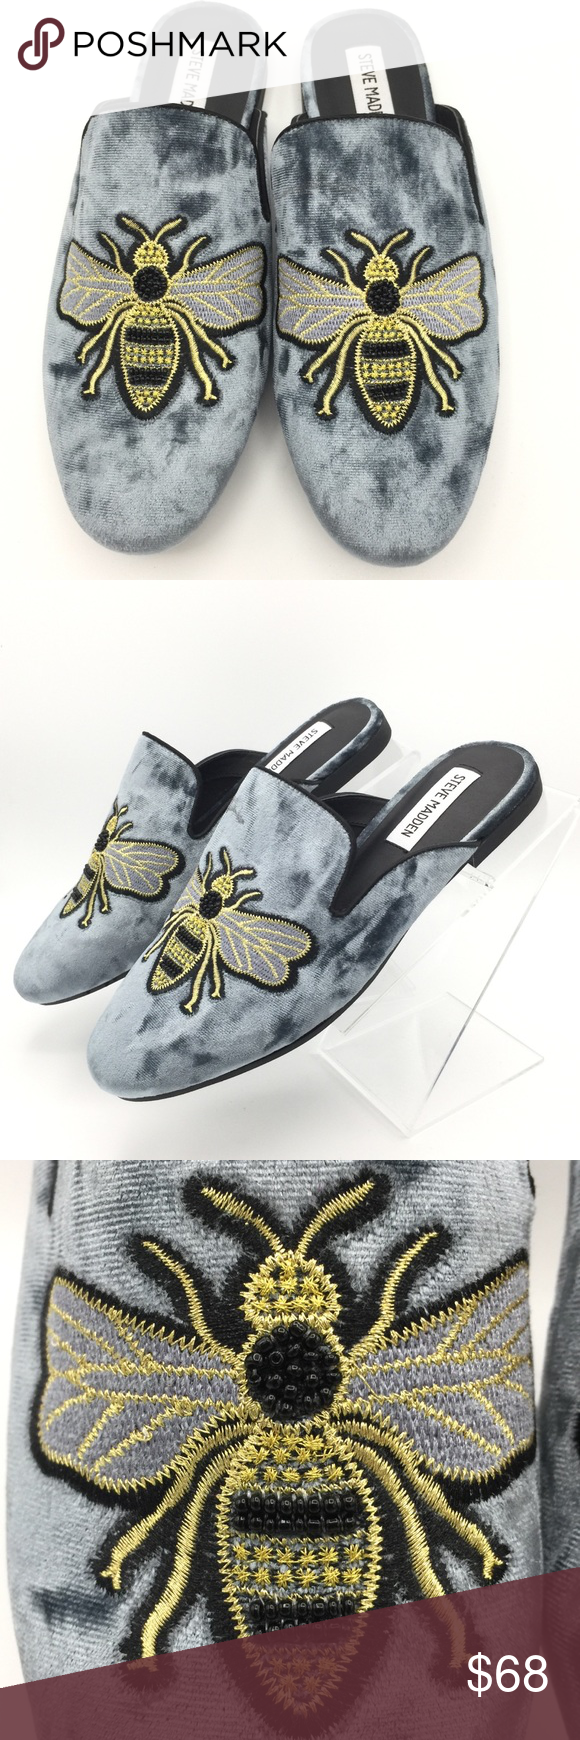 dbba5776026 Steve Madden Embroidered Bumble Bee Slide Mules NWOB Blue Gray Fabric